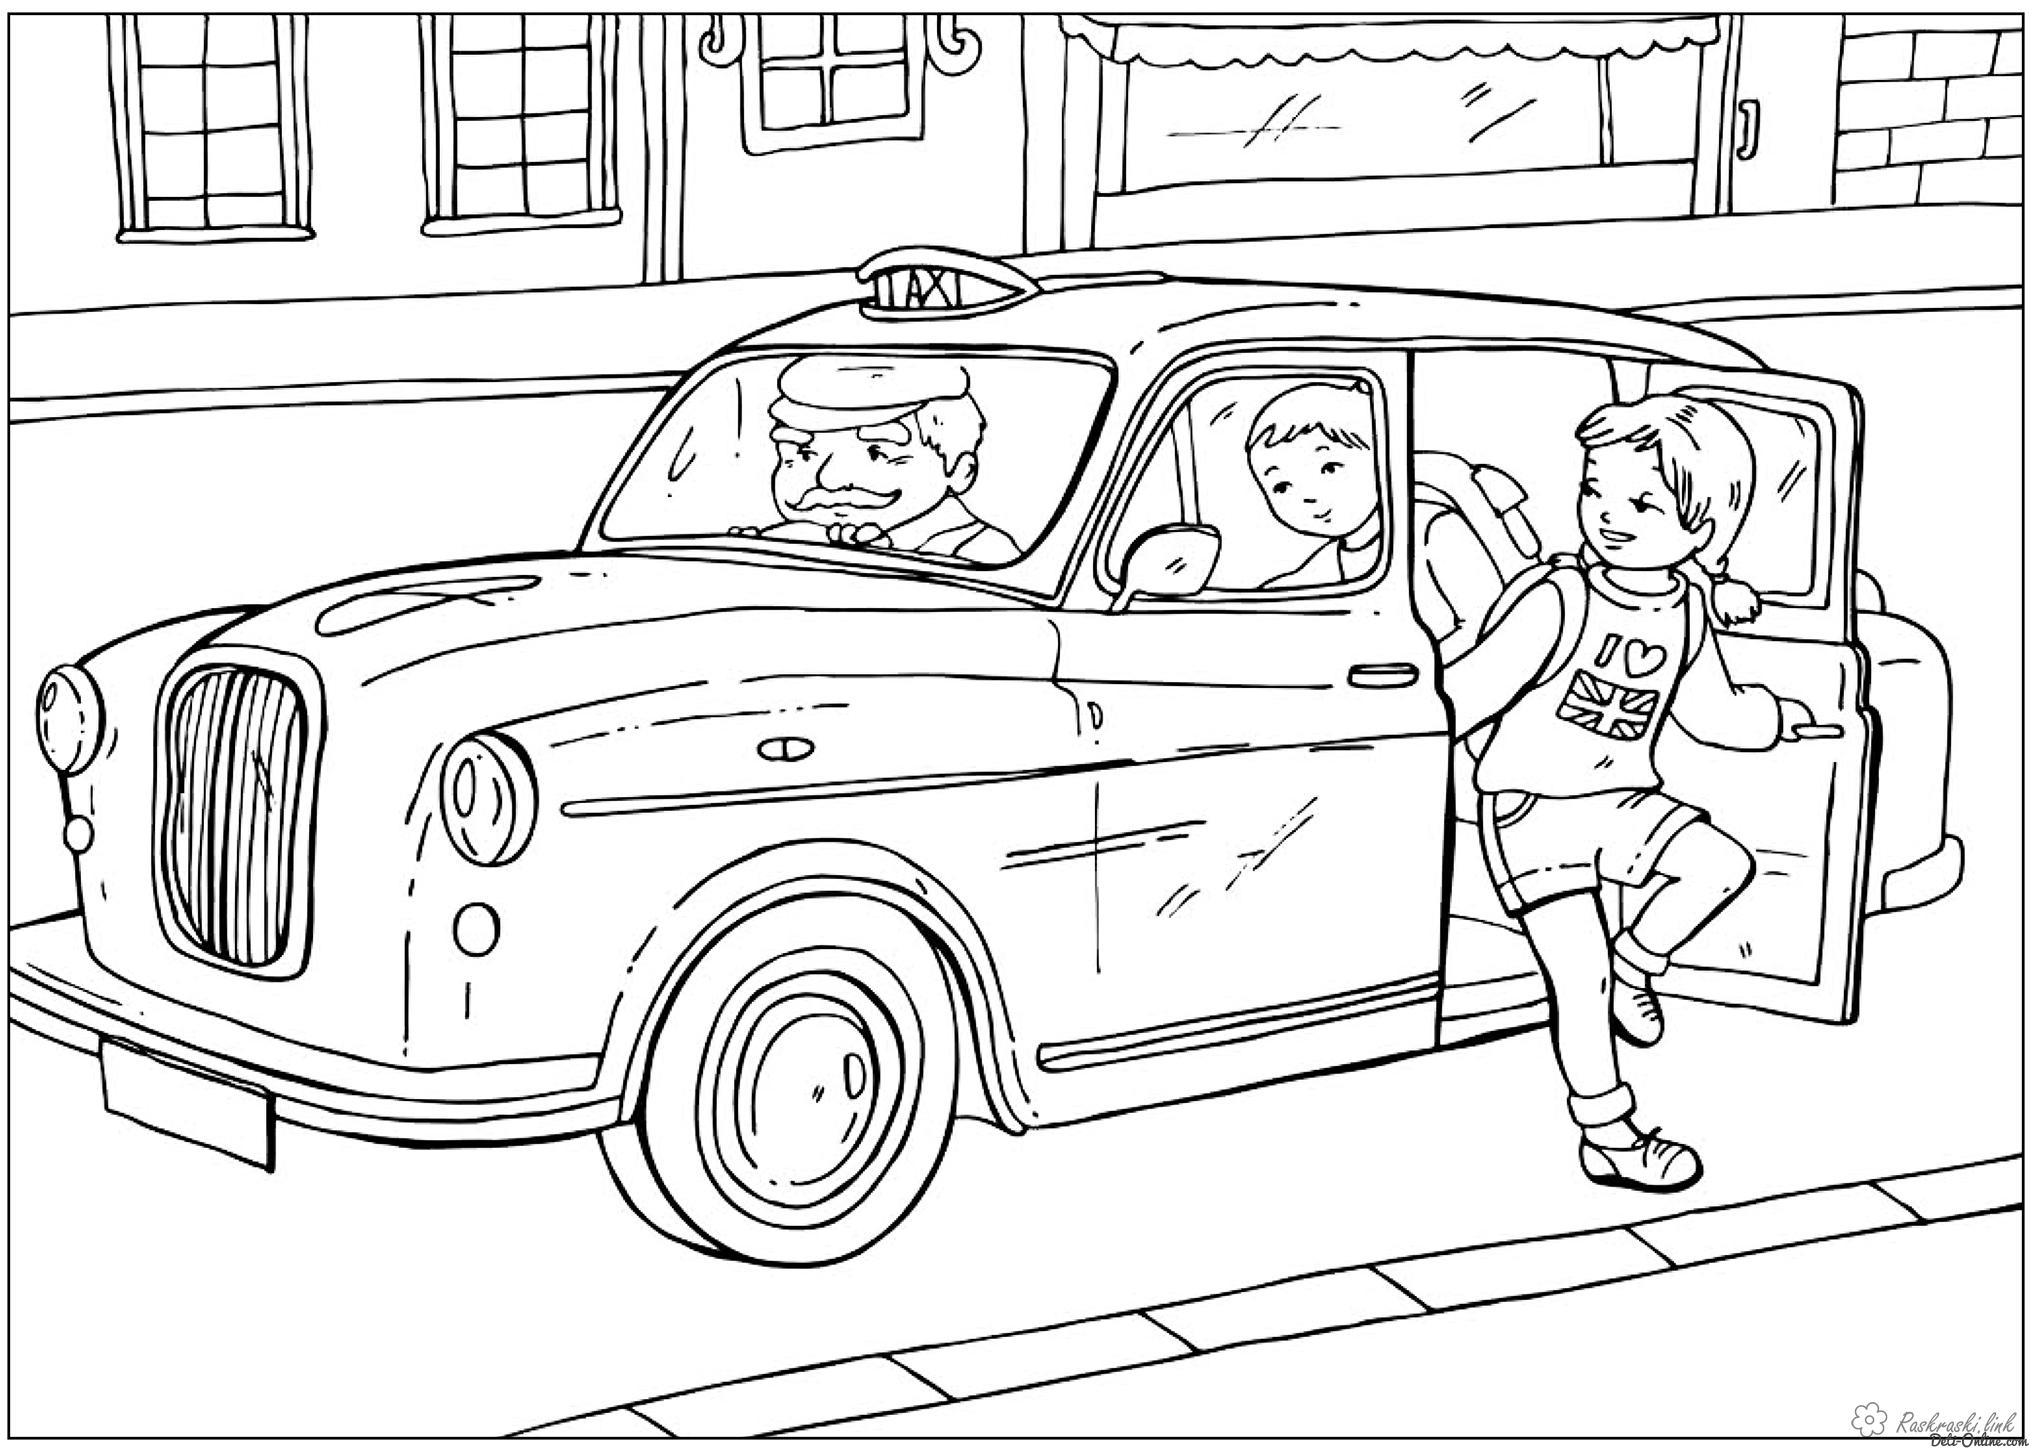 Coloring London coloring pages British taxi UK